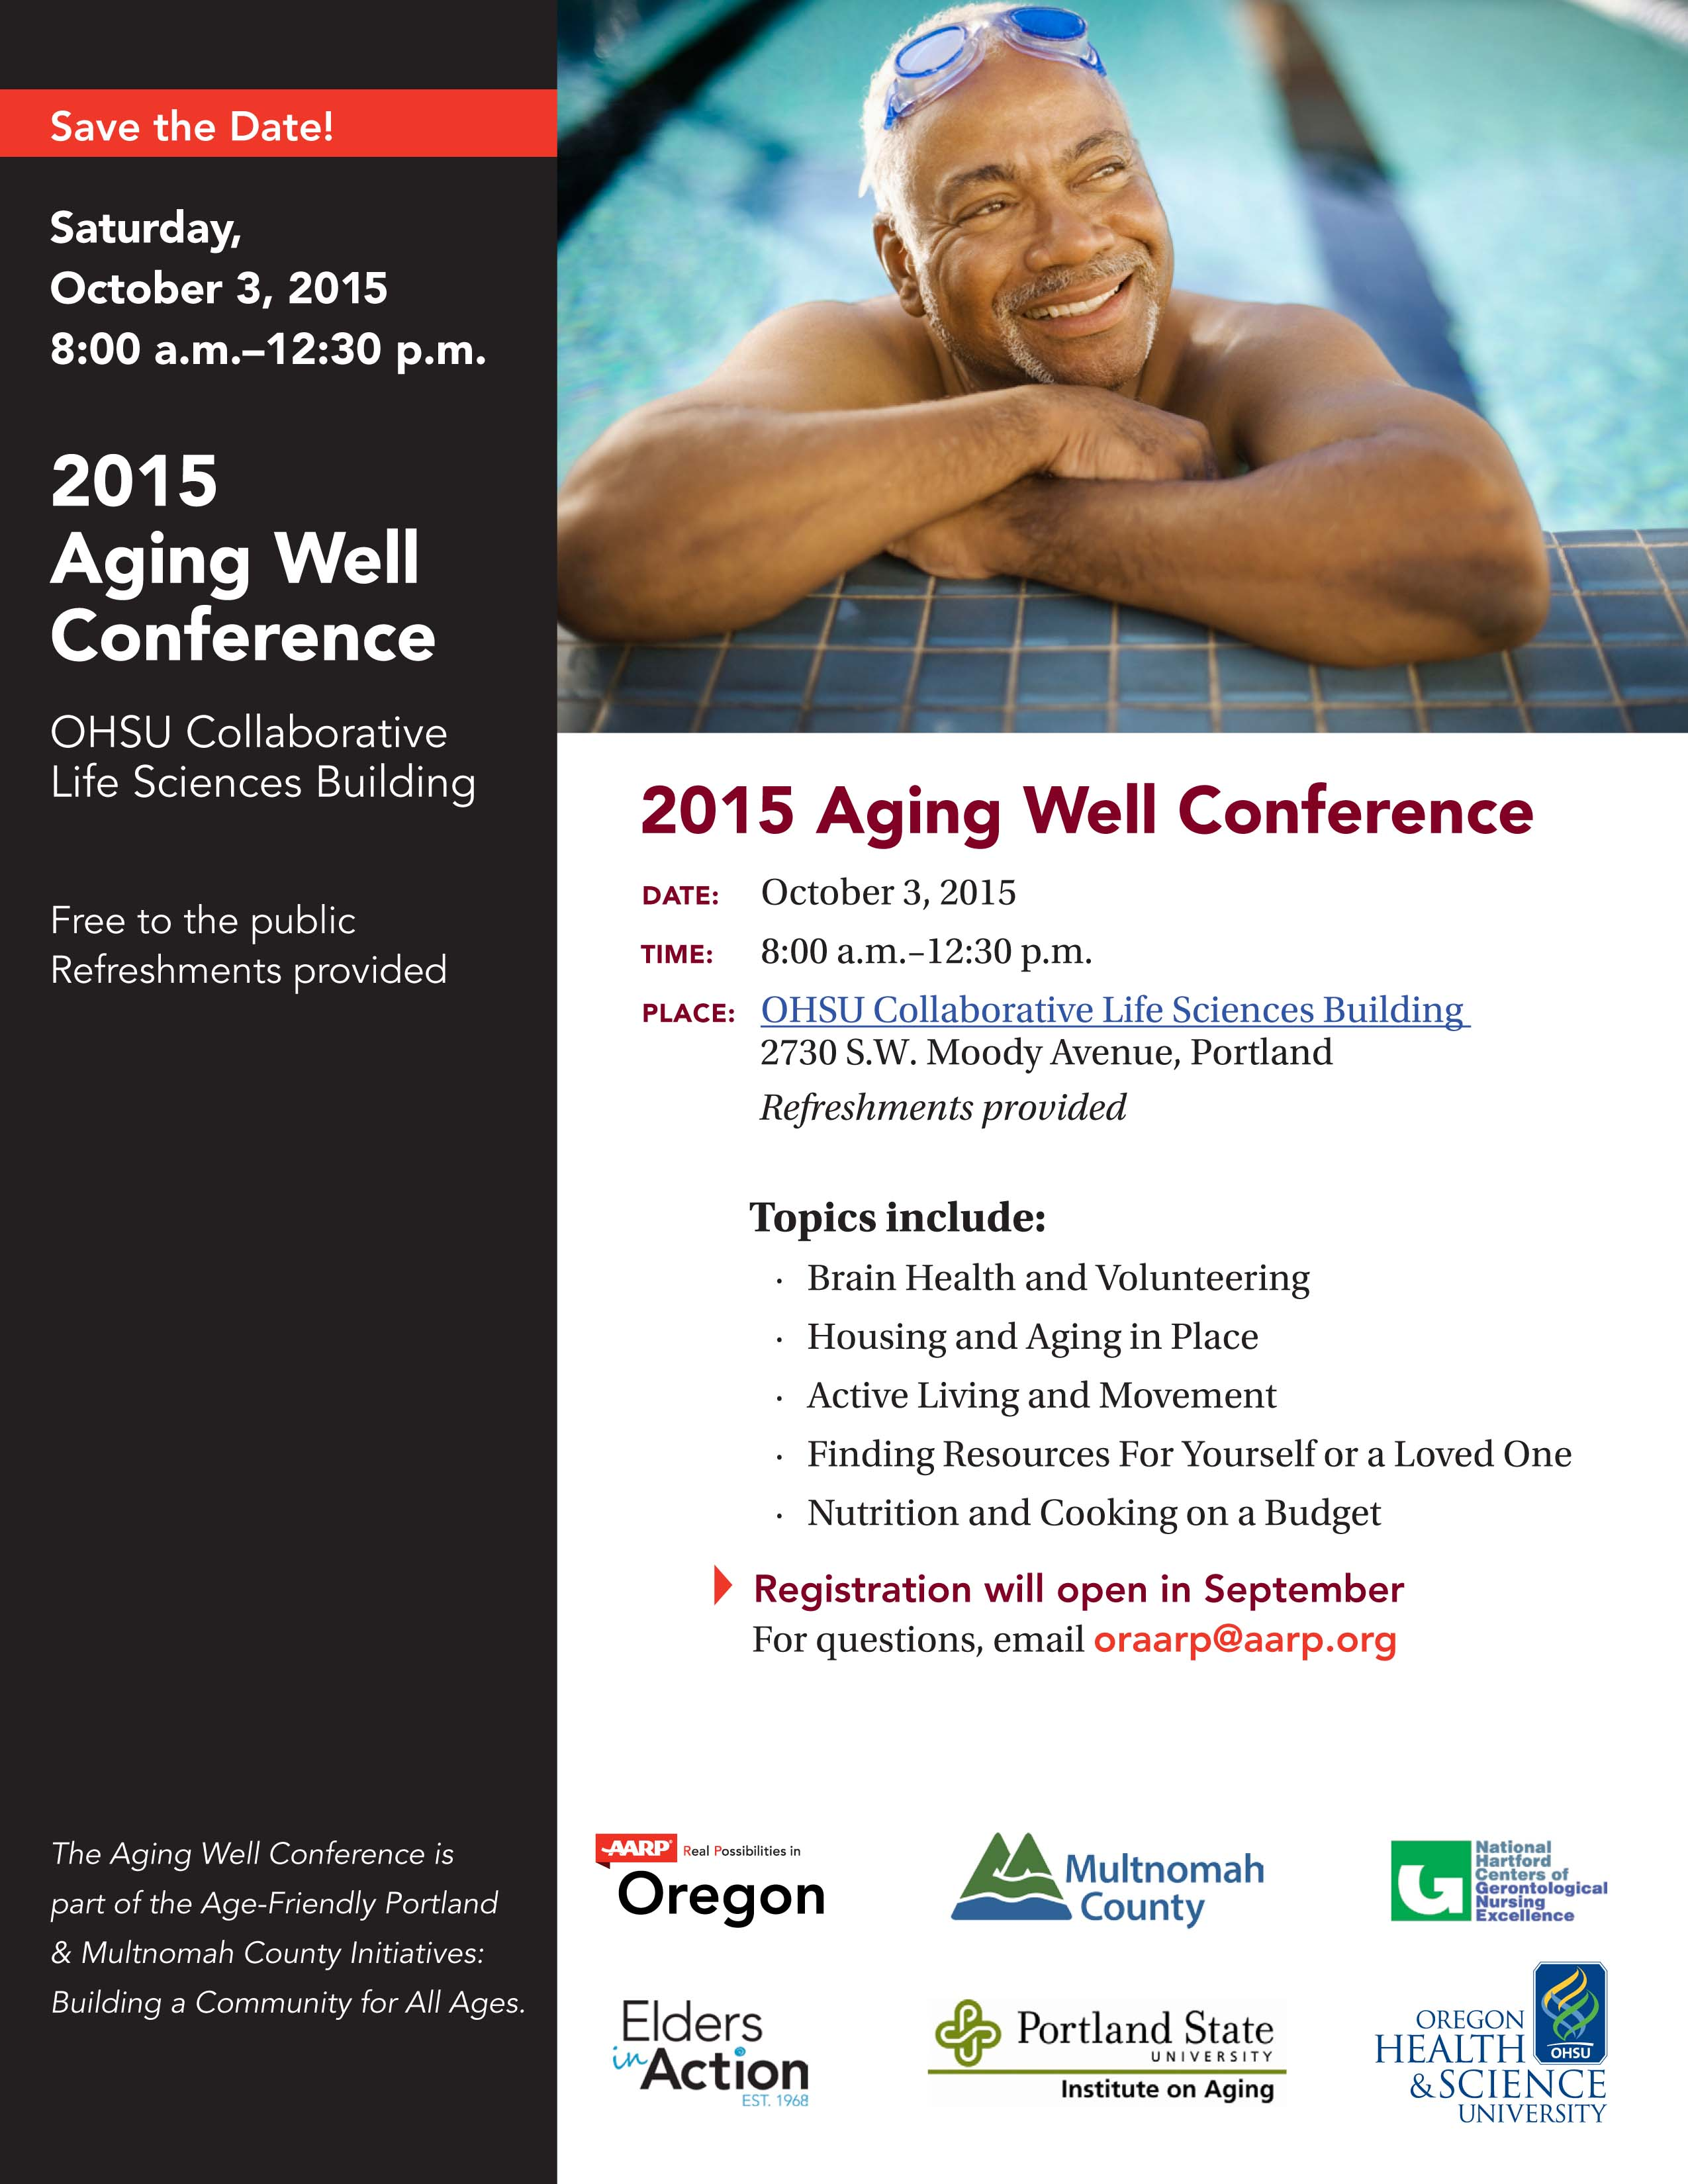 Aging Well Conference Flyer_Save the Date